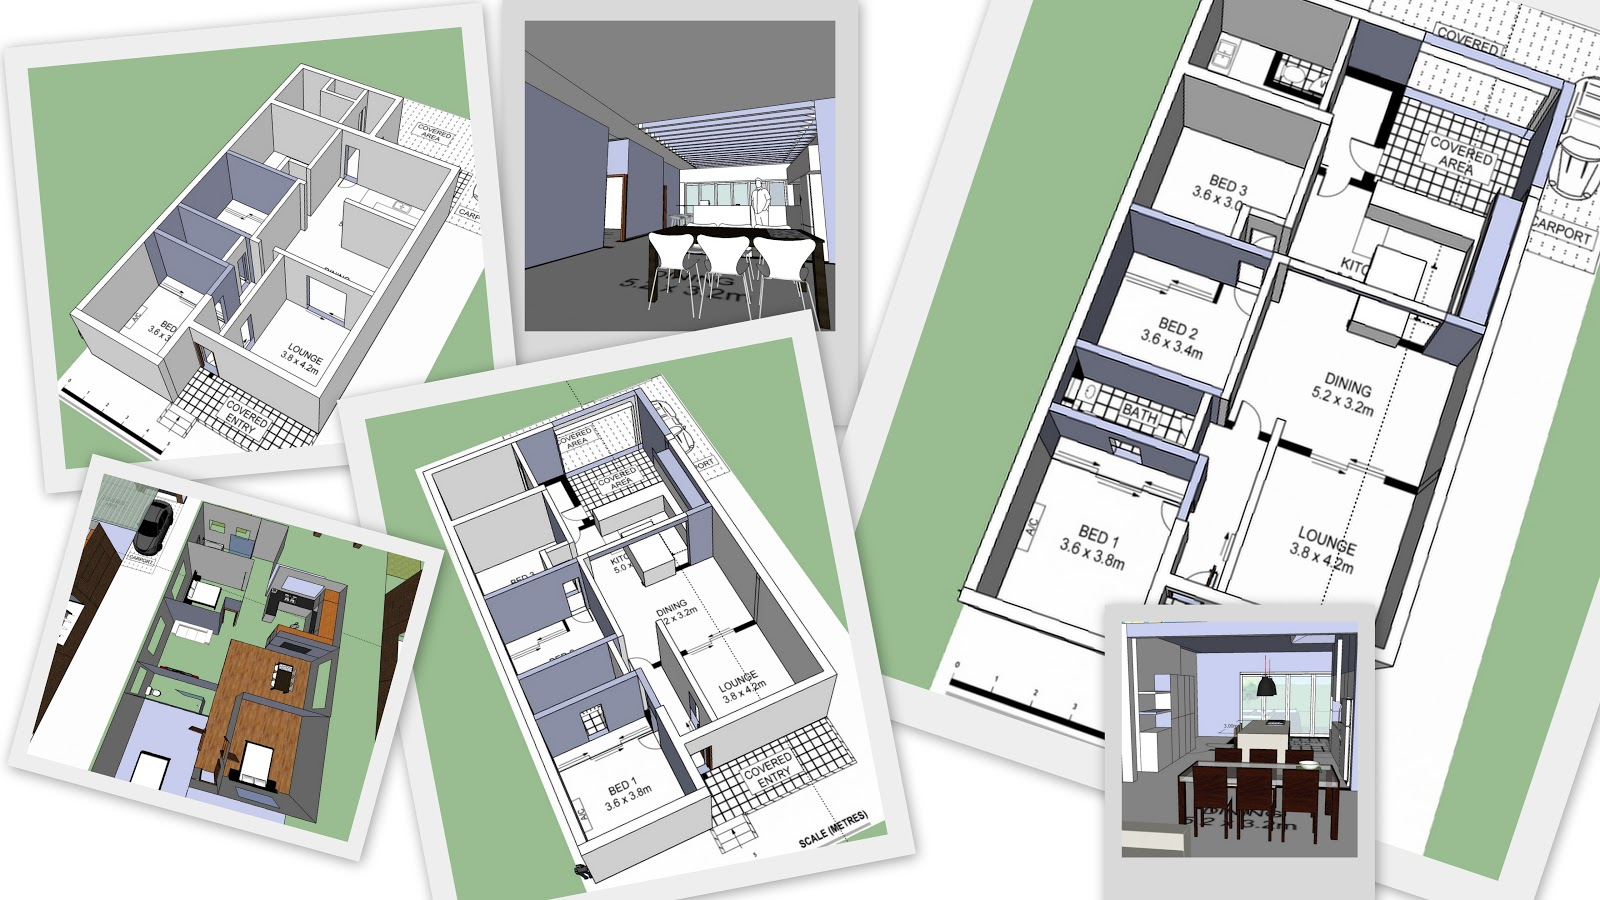 Unleash The Creative Beast Floor Plans With Google Sketchup Renovating A Sydney House